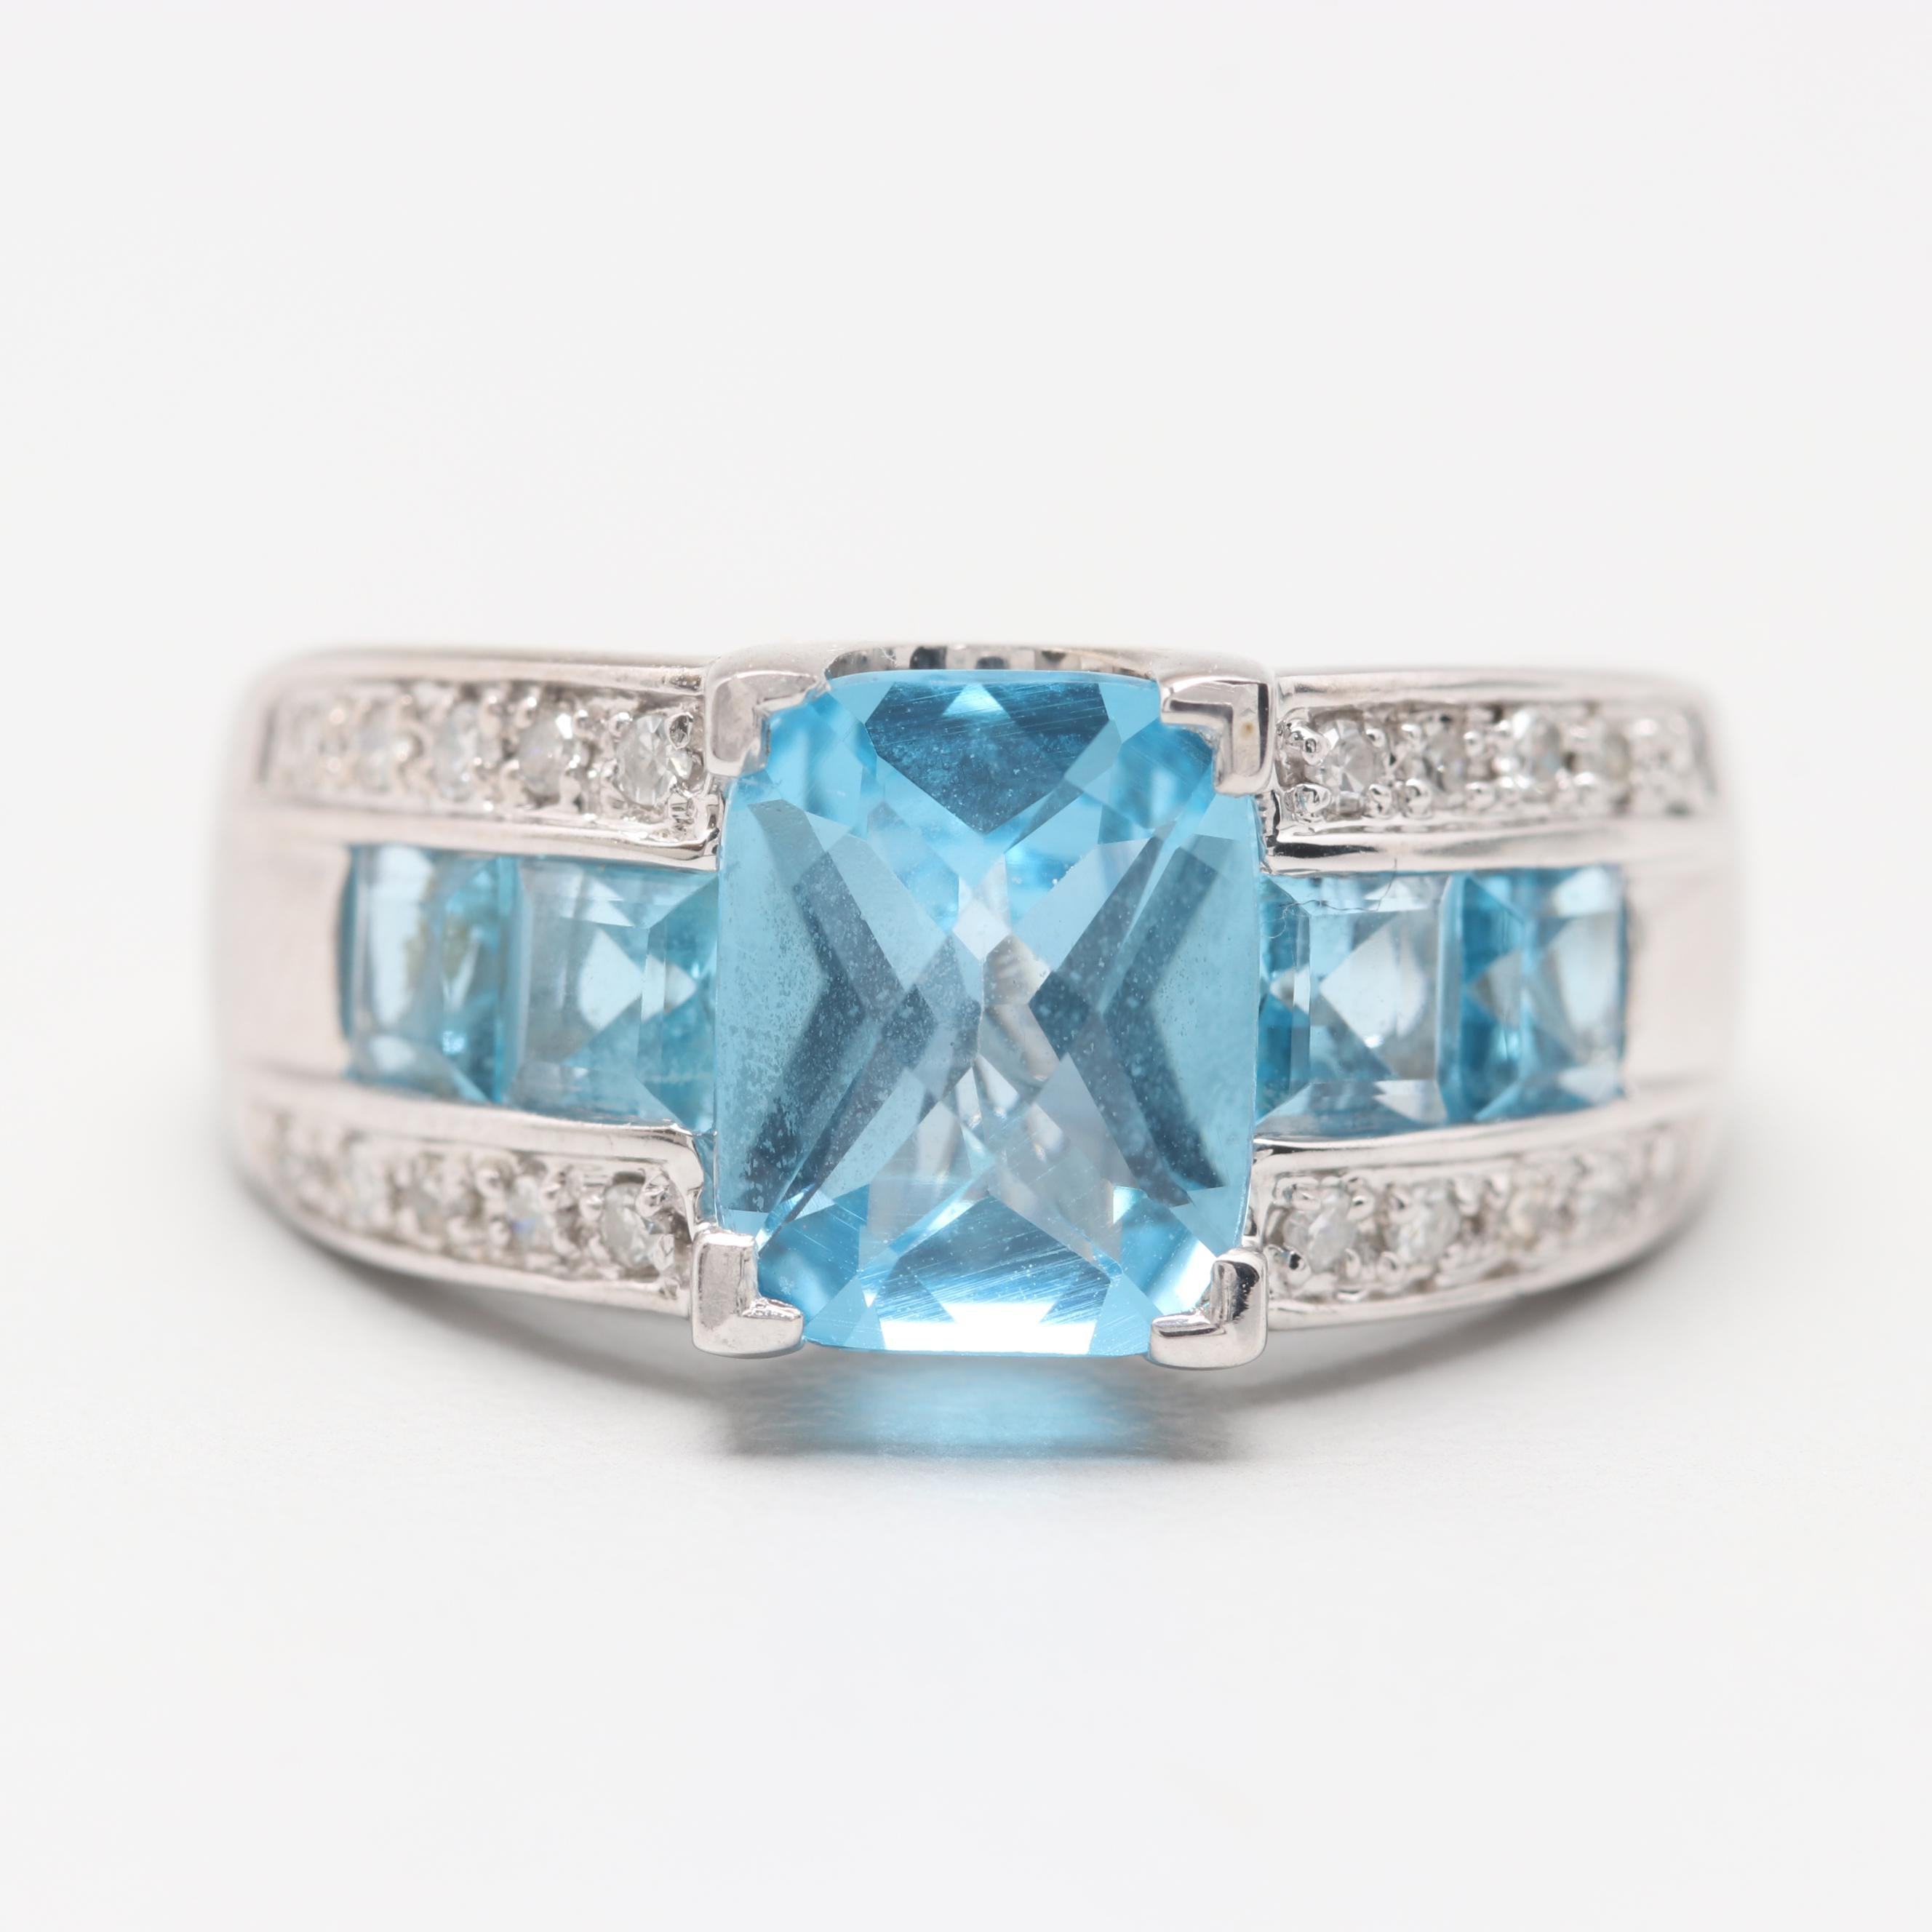 Alwand Vahan 14K White Gold Blue Topaz and Diamond Ring